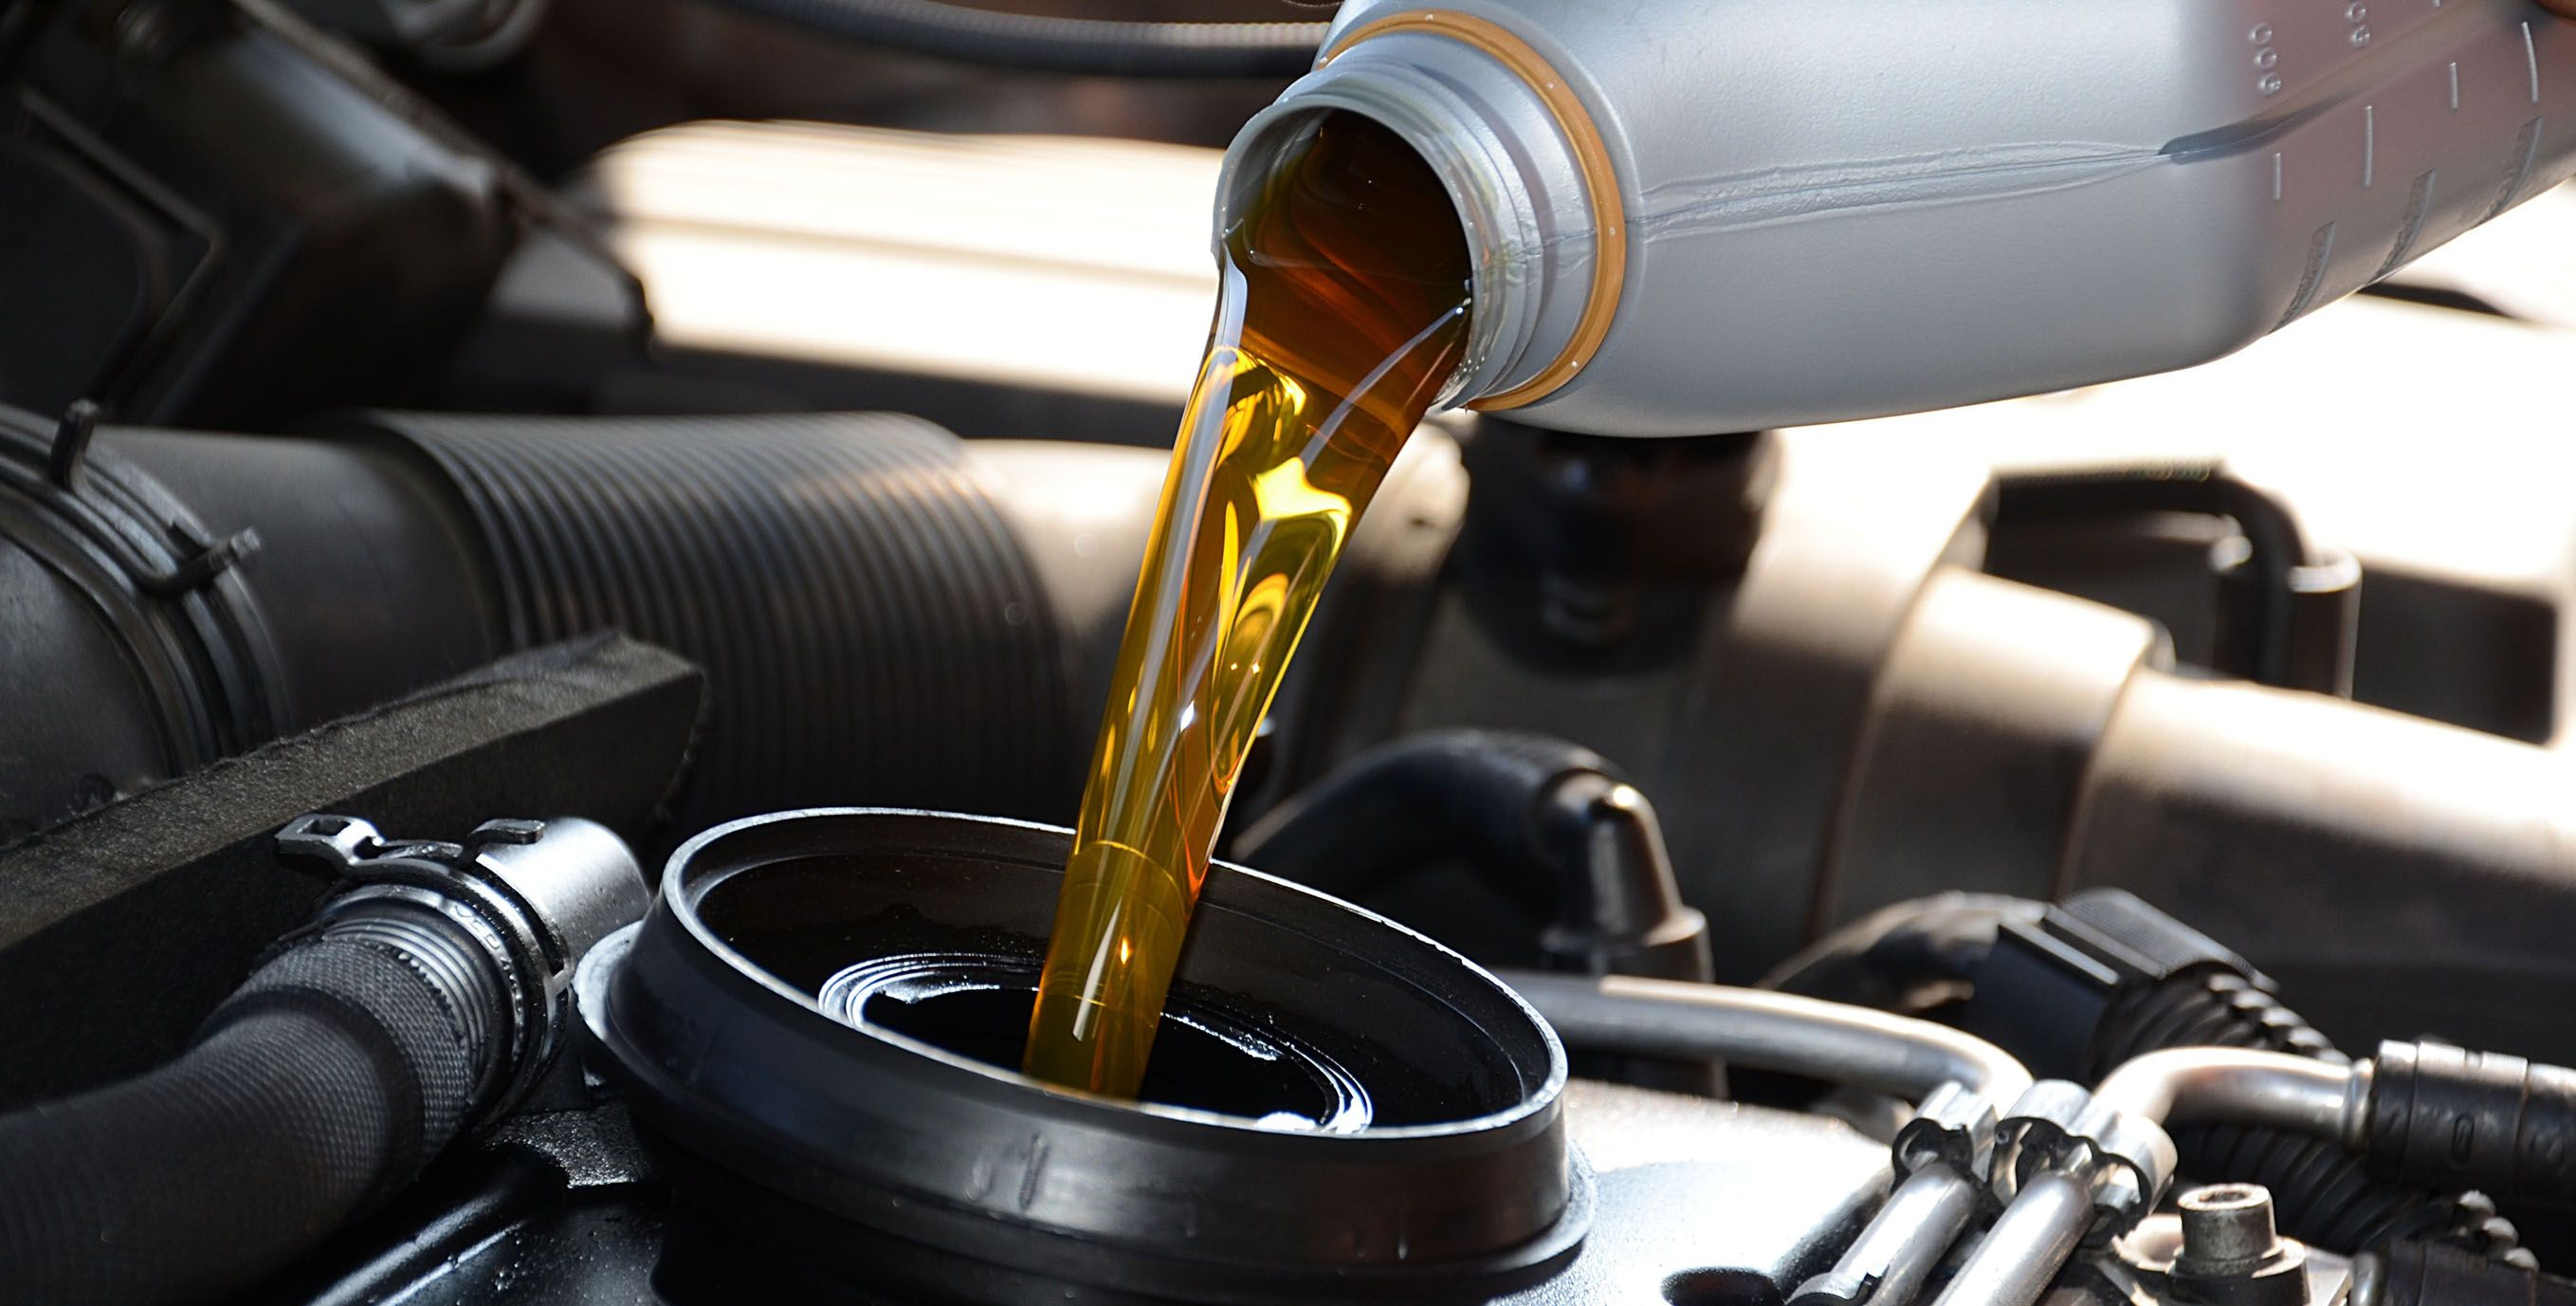 How Often Should I Change My Oil?